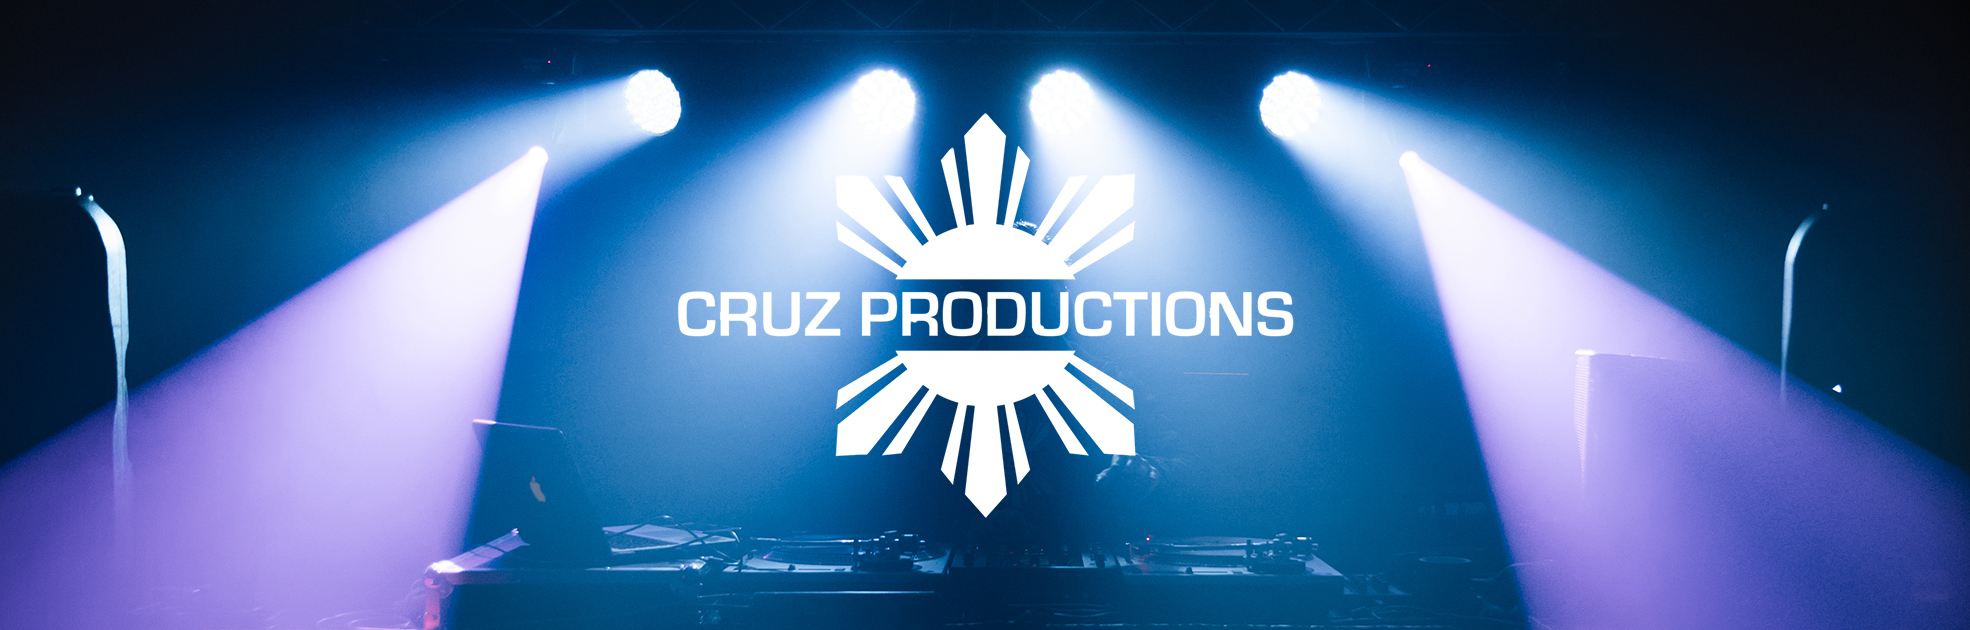 Image of CRUZ PRODUCTIONS